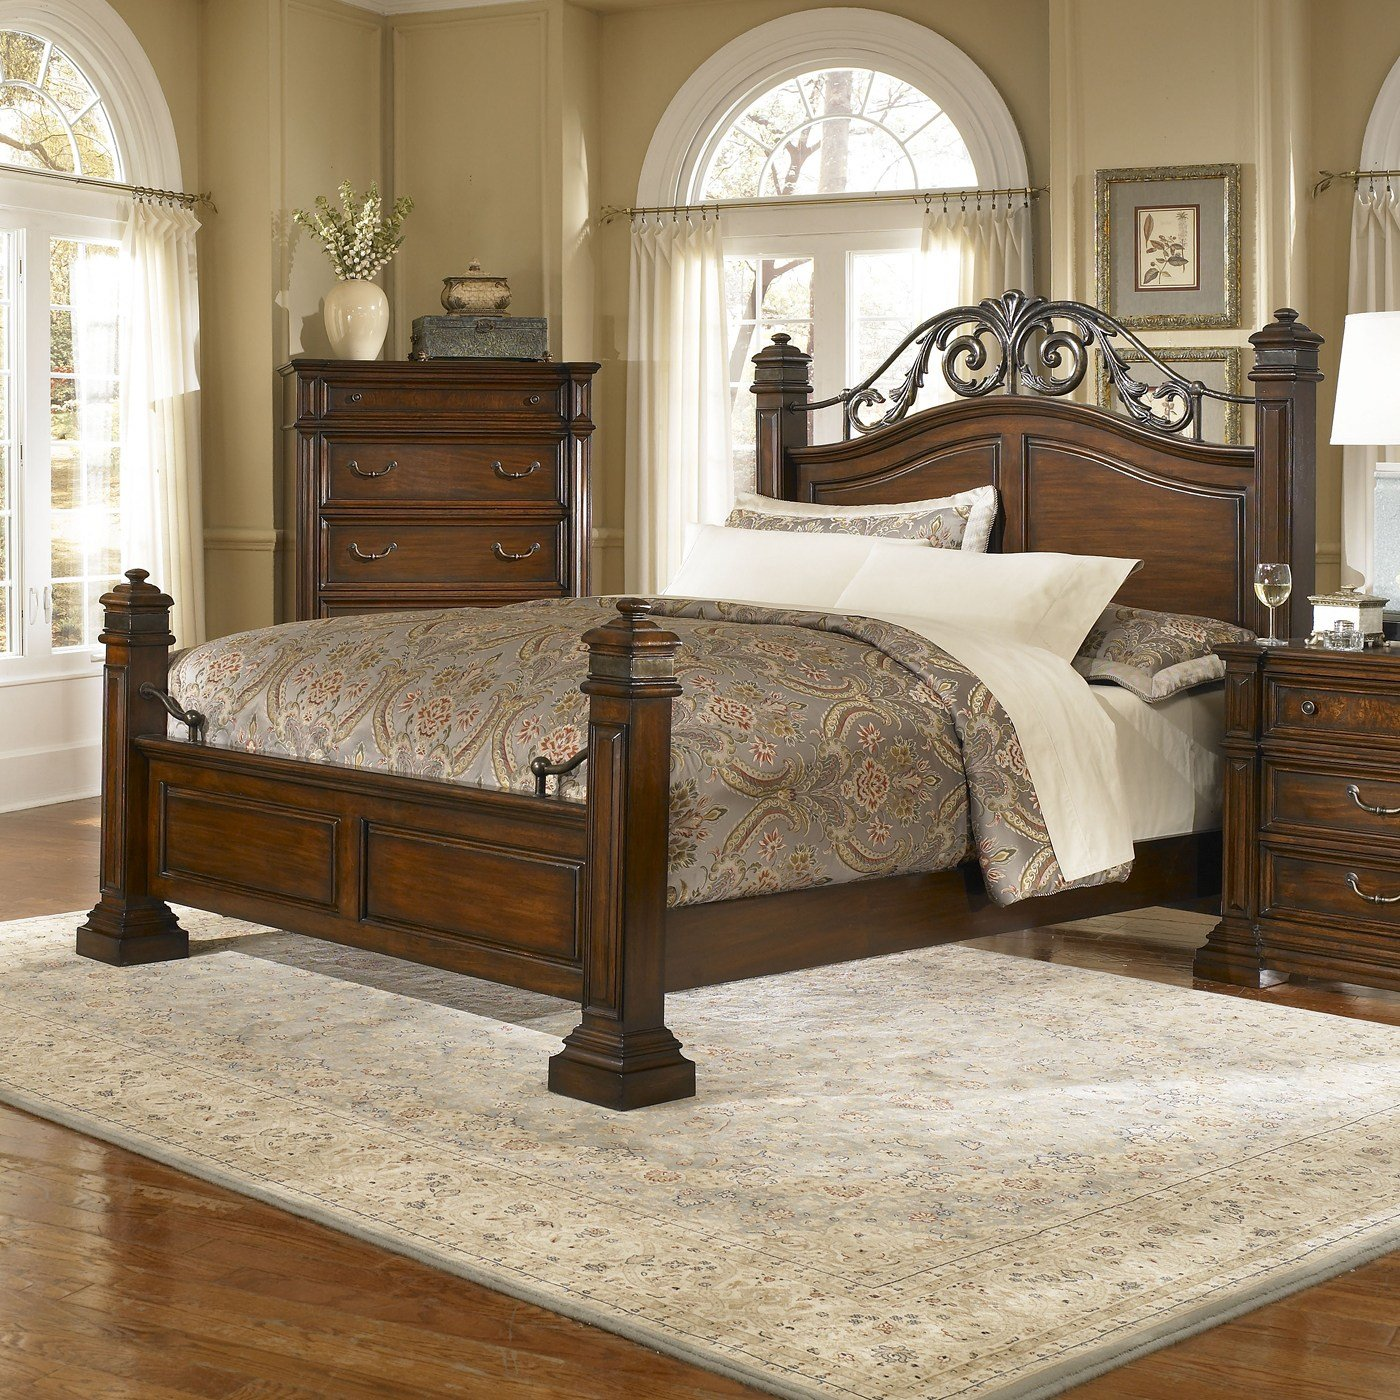 Best Progressive Furniture P166 Regency Panel Bed Atg Stores With Pictures